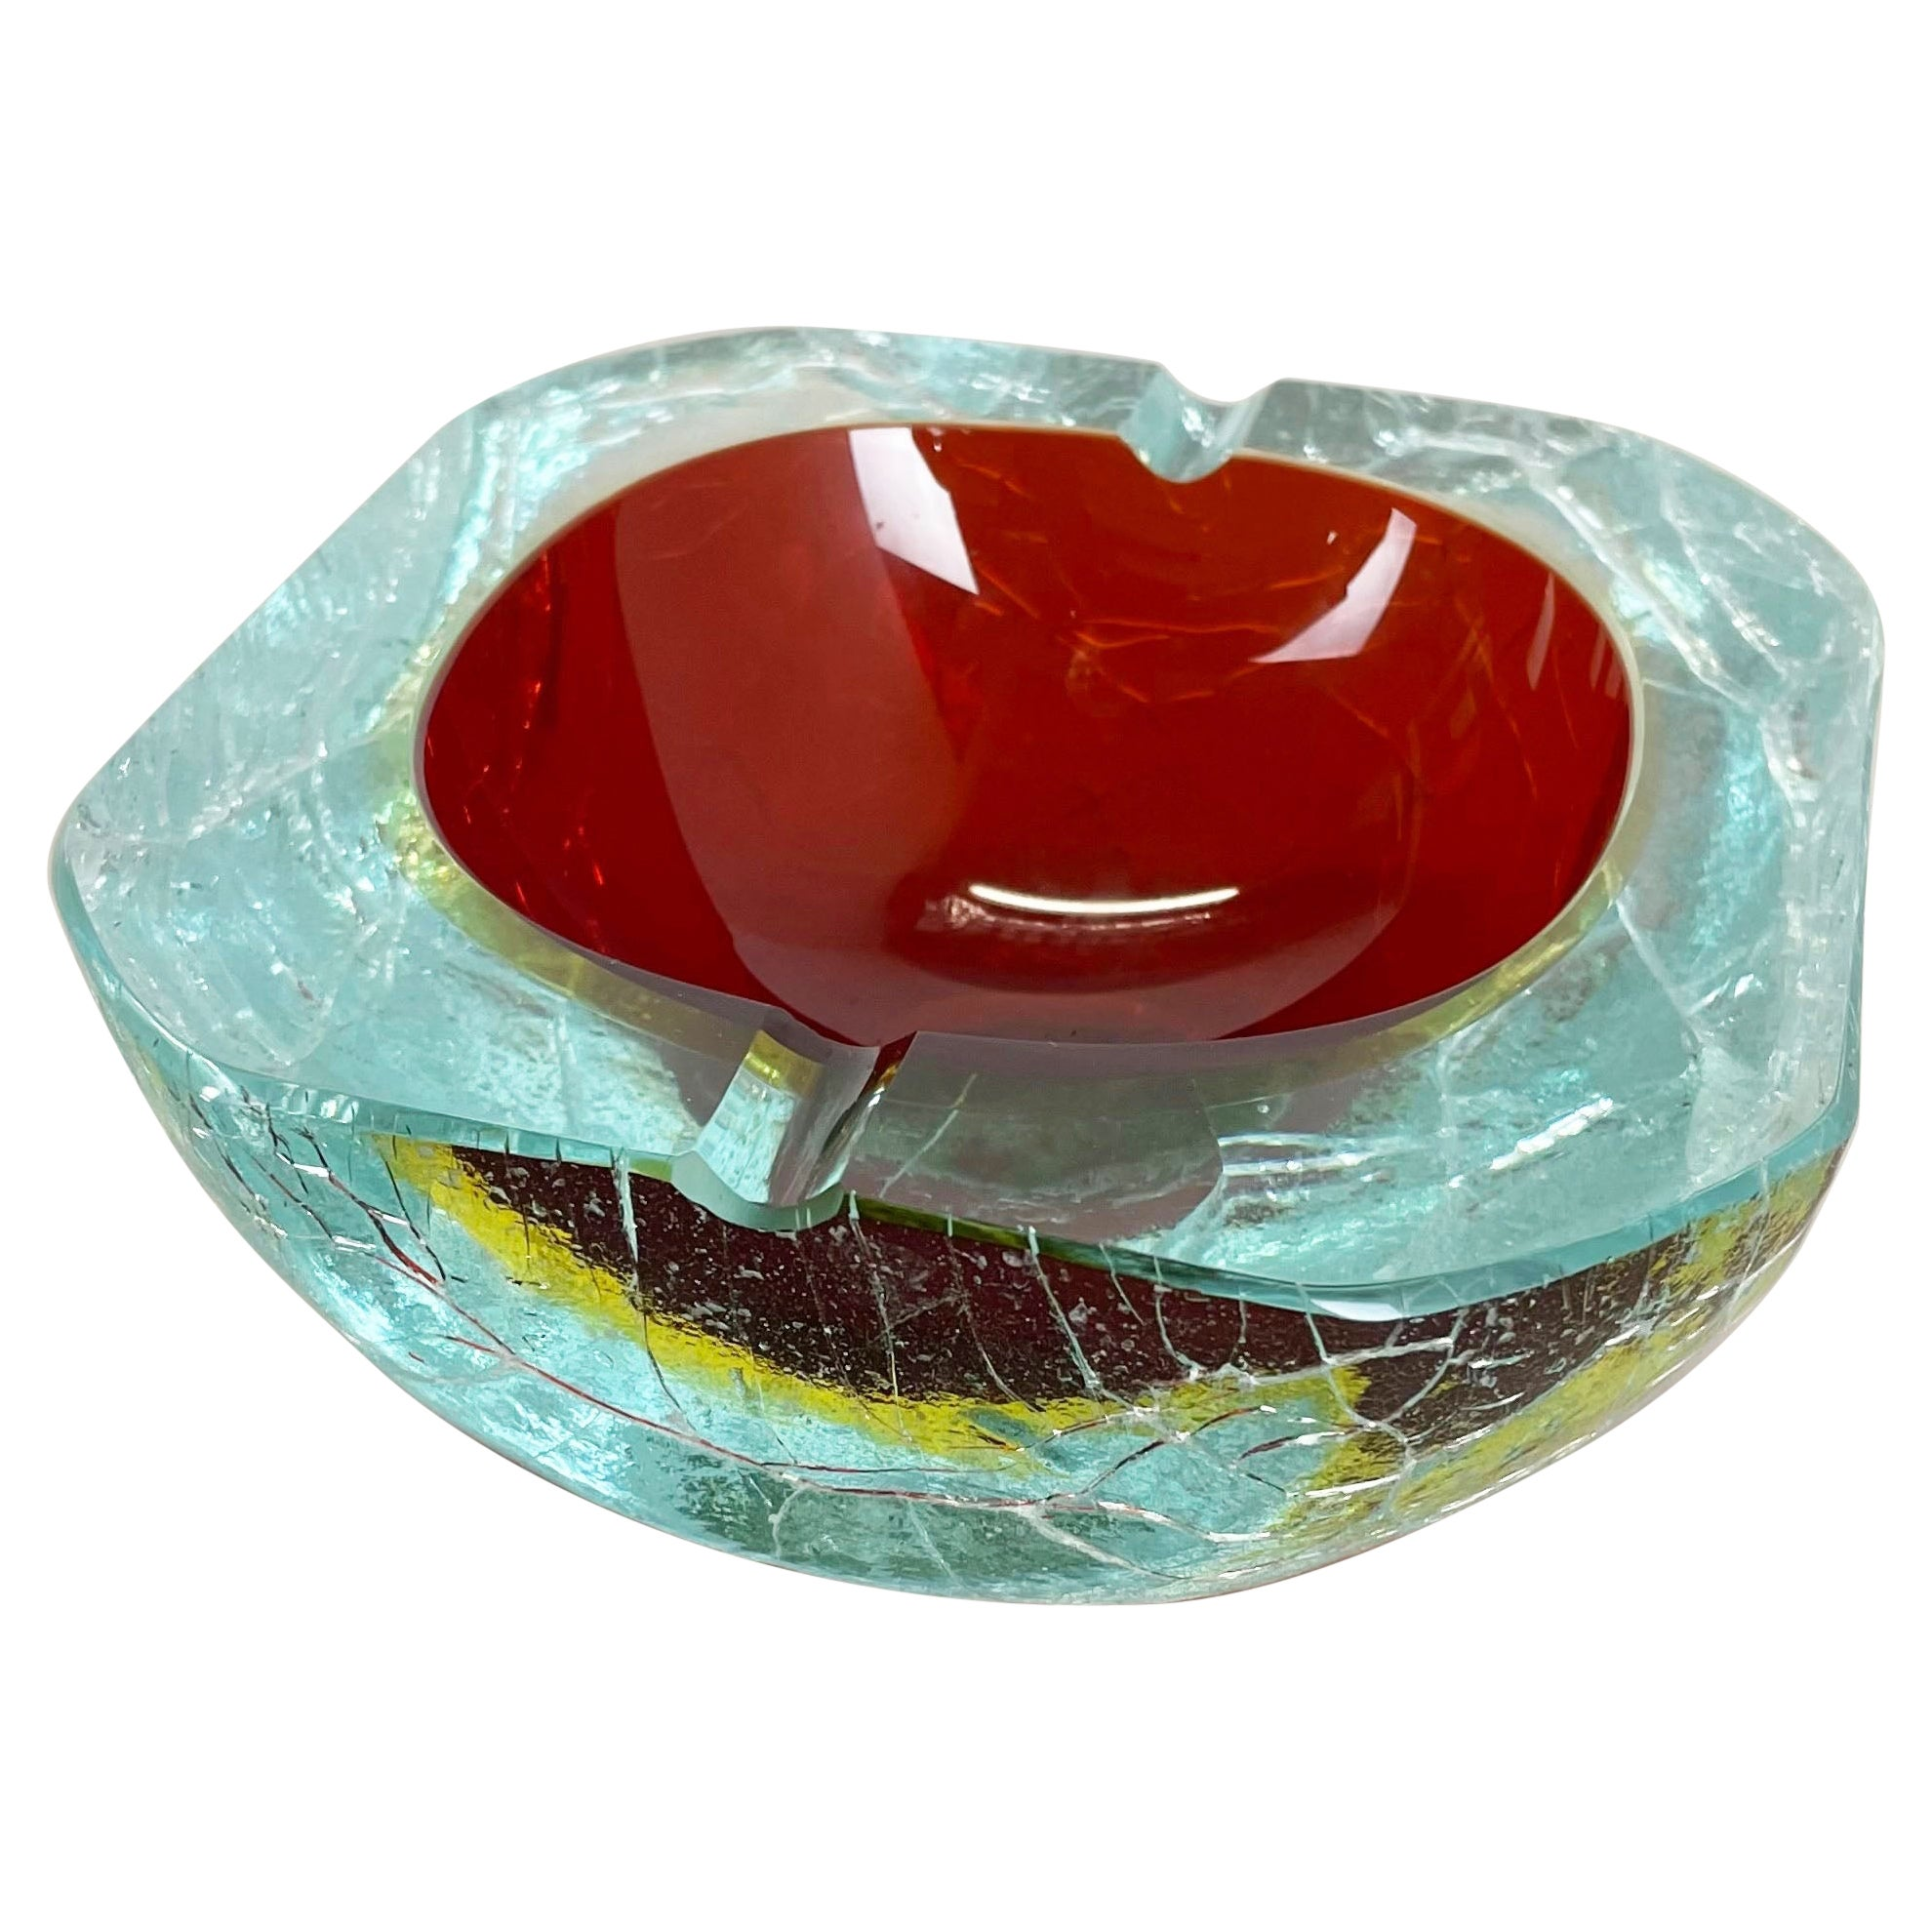 Large 1,7kg Murano Glass Crack Structure Bowl Shells Ashtray Element Italy 1970s